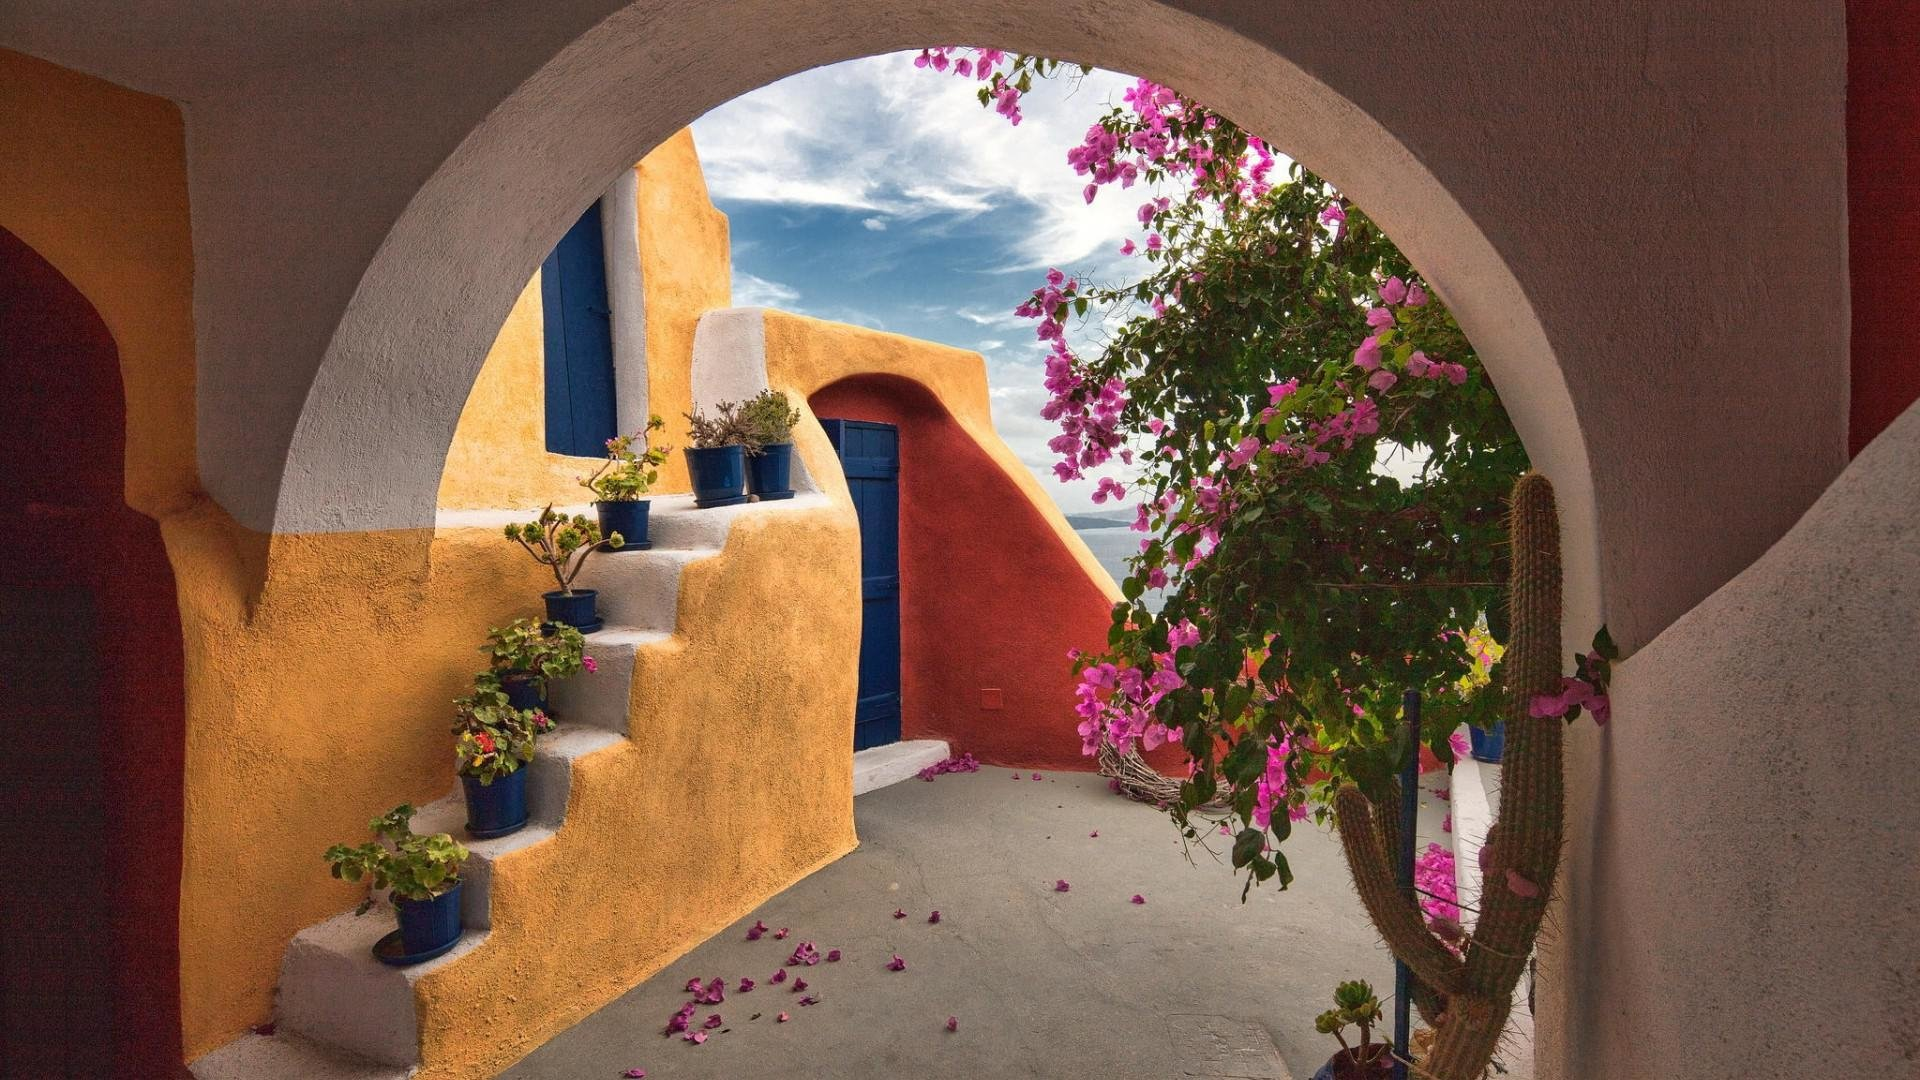 archway to house in santorini hd wallpaper background